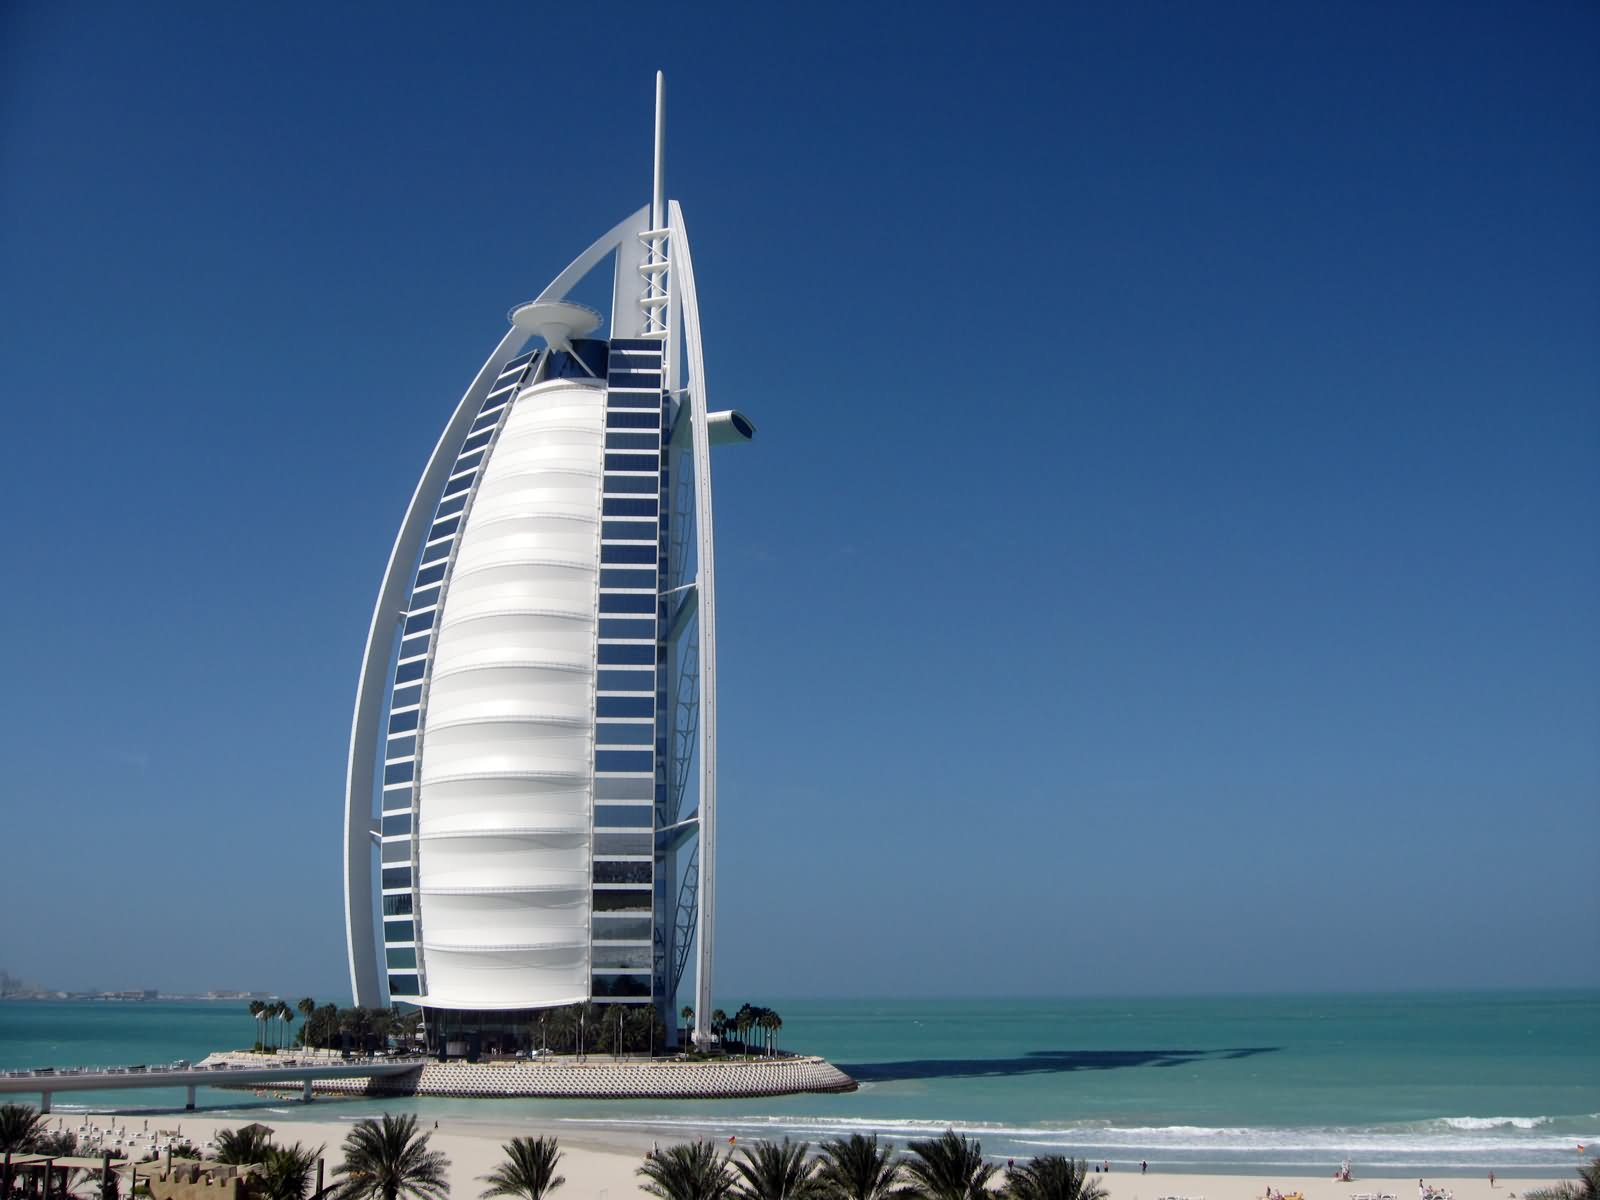 40 most beautiful burj al arab dubai pictures and photos for Dubai burj al arab